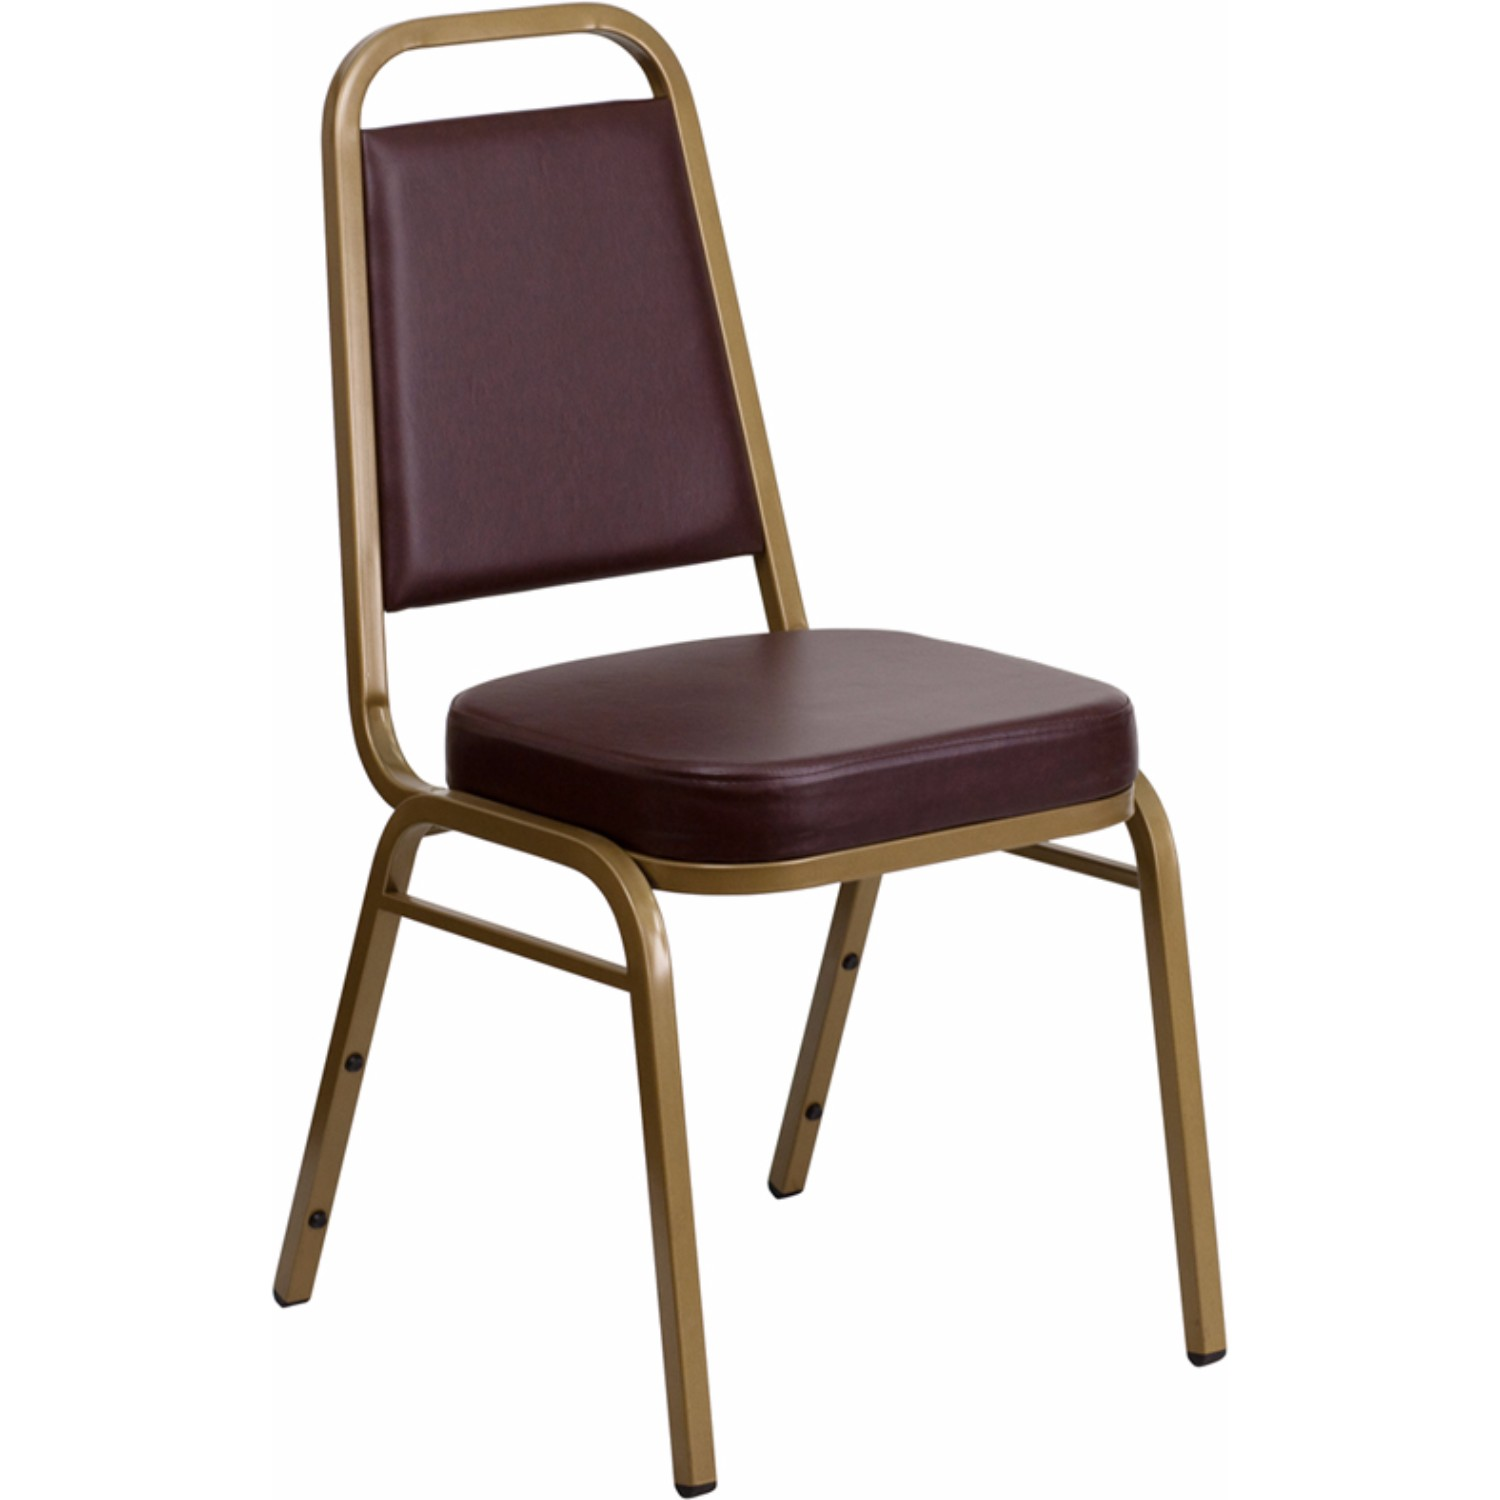 Offex HERCULES Series Trapezoidal Back Stacking Banquet Chair with Brown Vinyl and 2.5' Thick Seat - Gold Frame [FD-BHF-1-ALLGOLD-BN-GG]